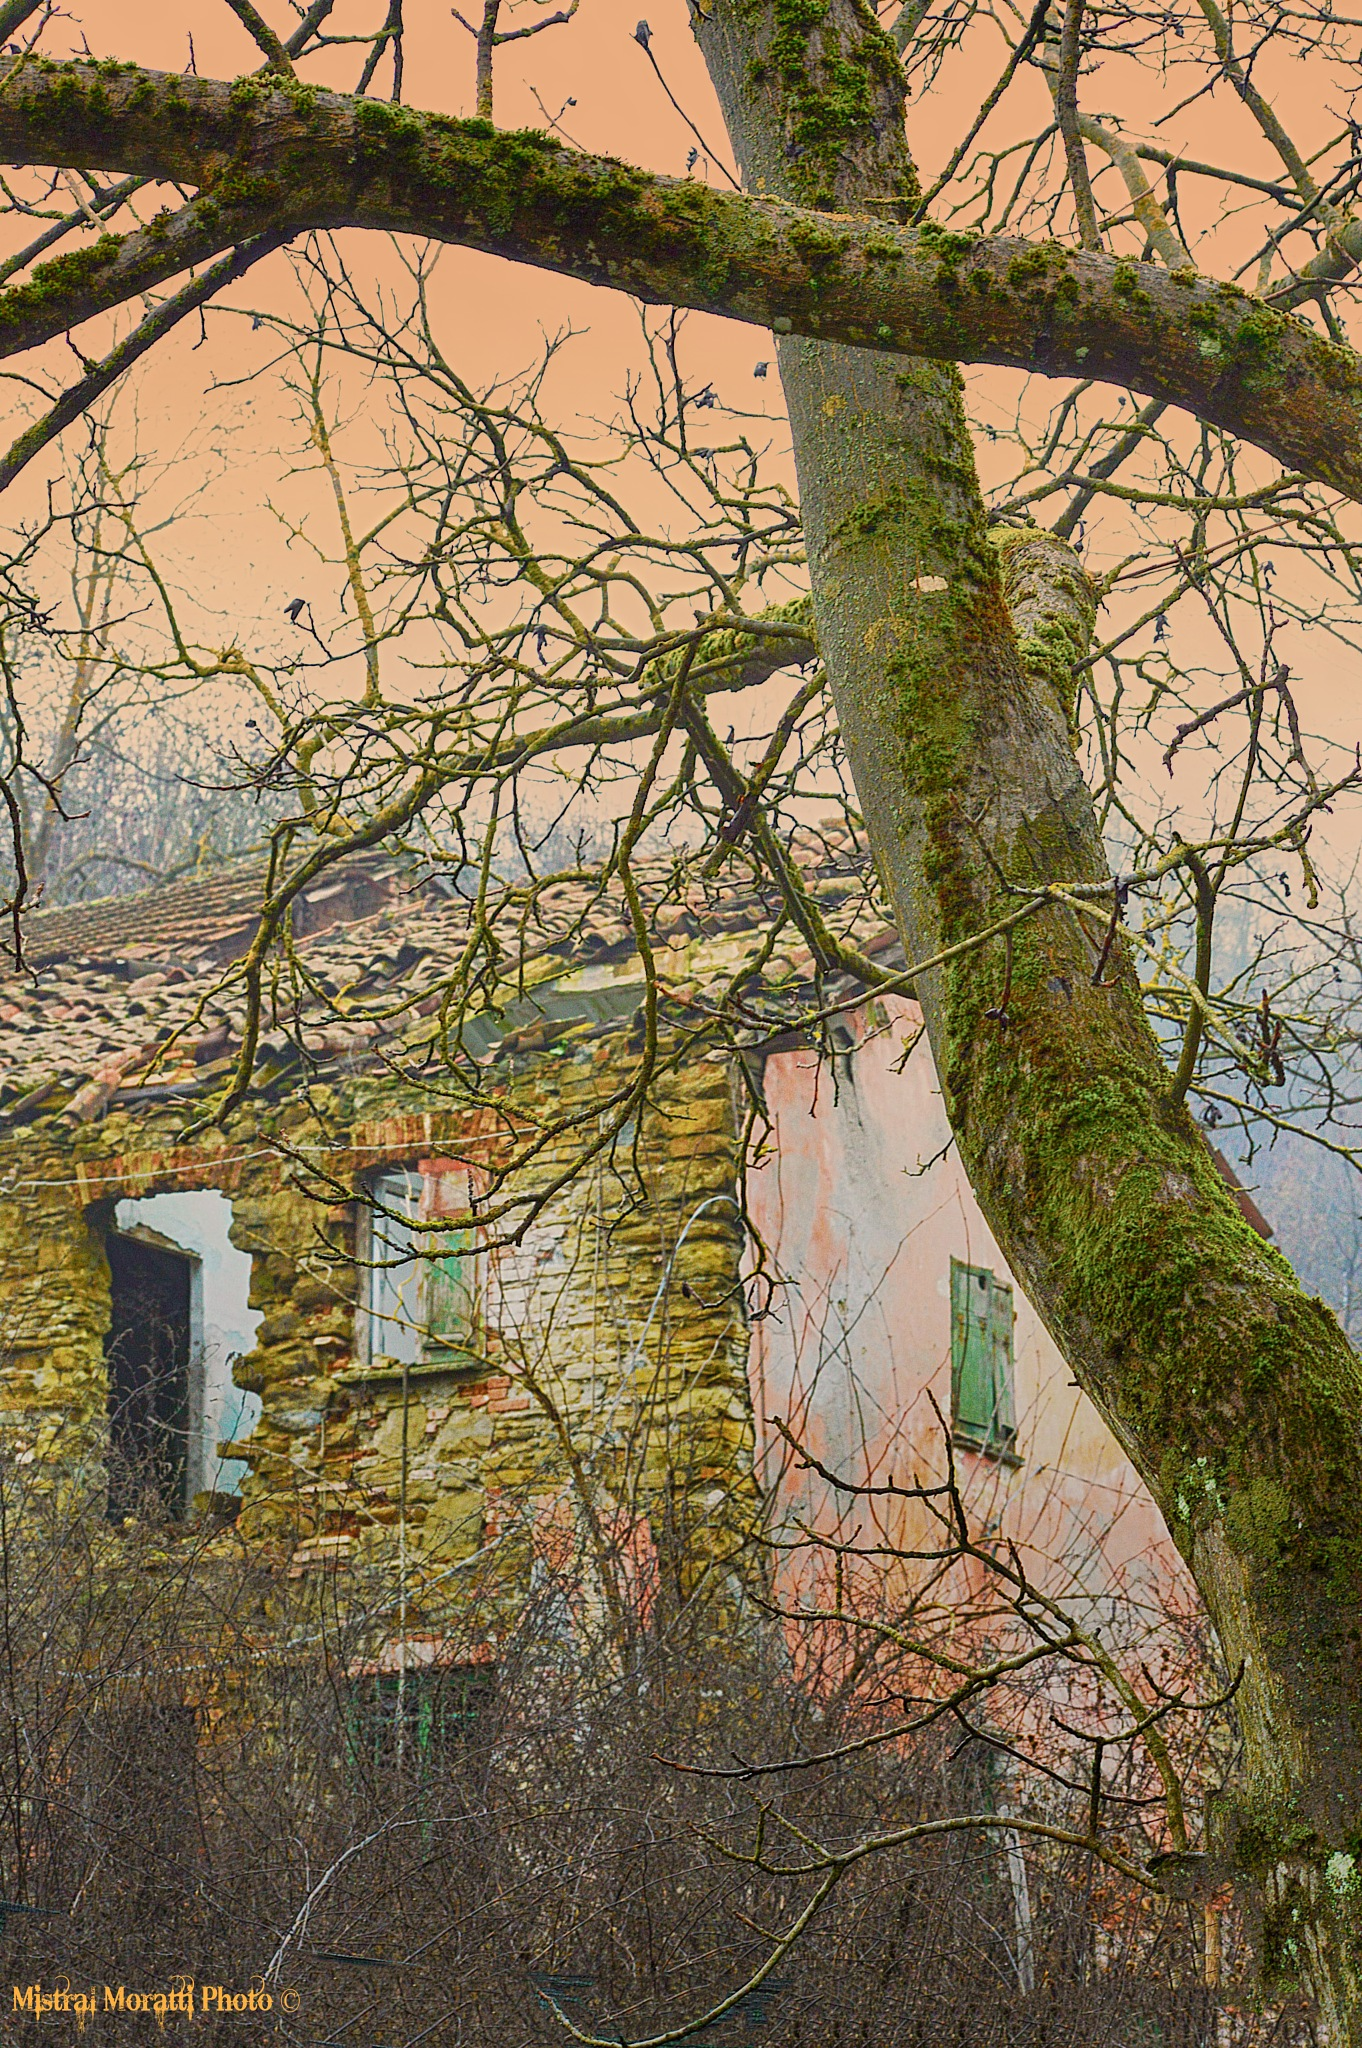 the witch's house by Mistral Moratti